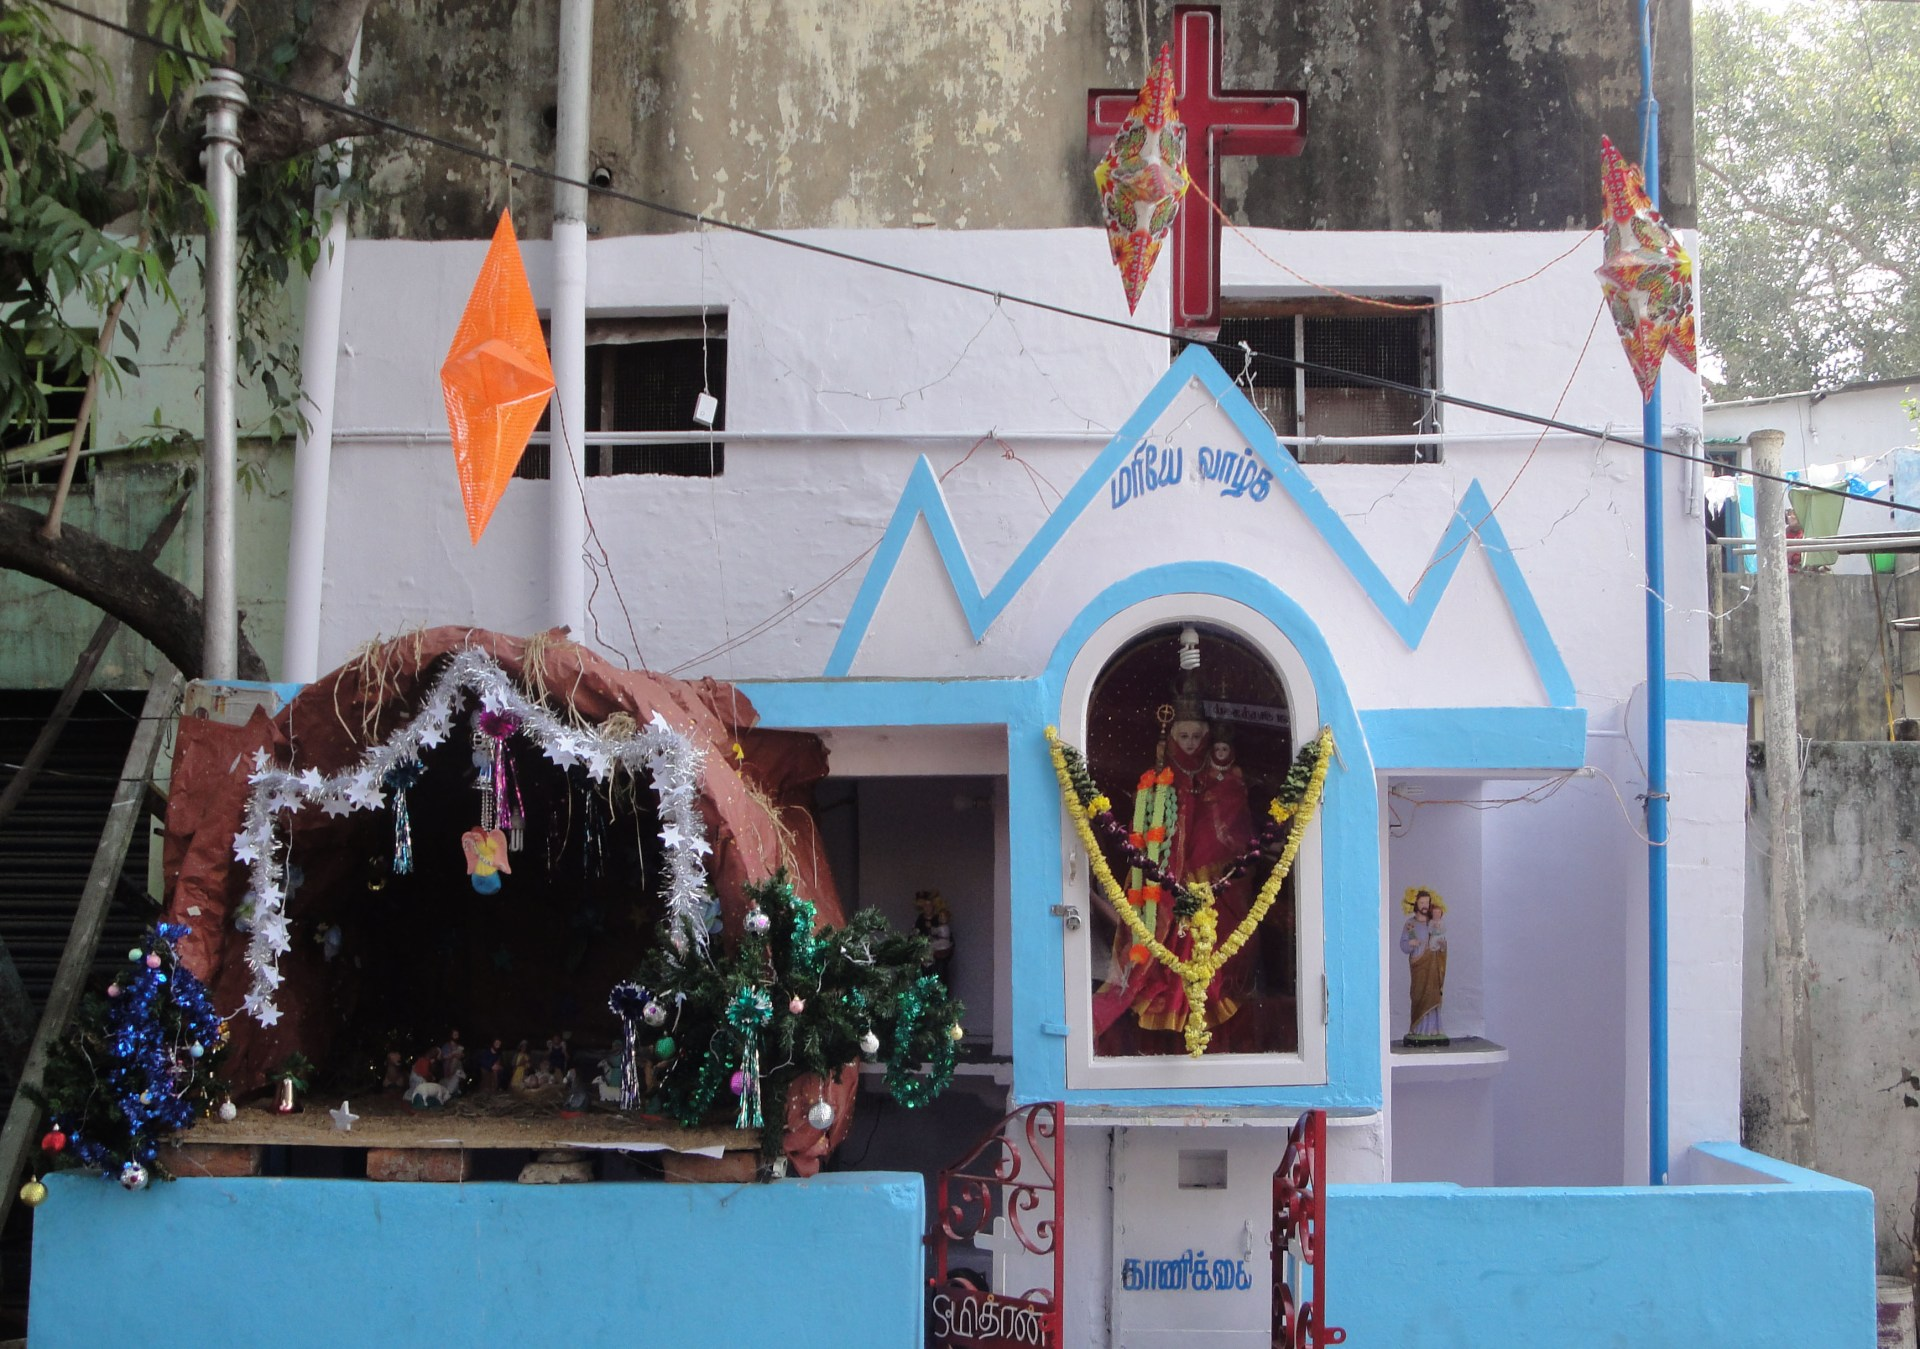 Where does one go for Christmas in India?